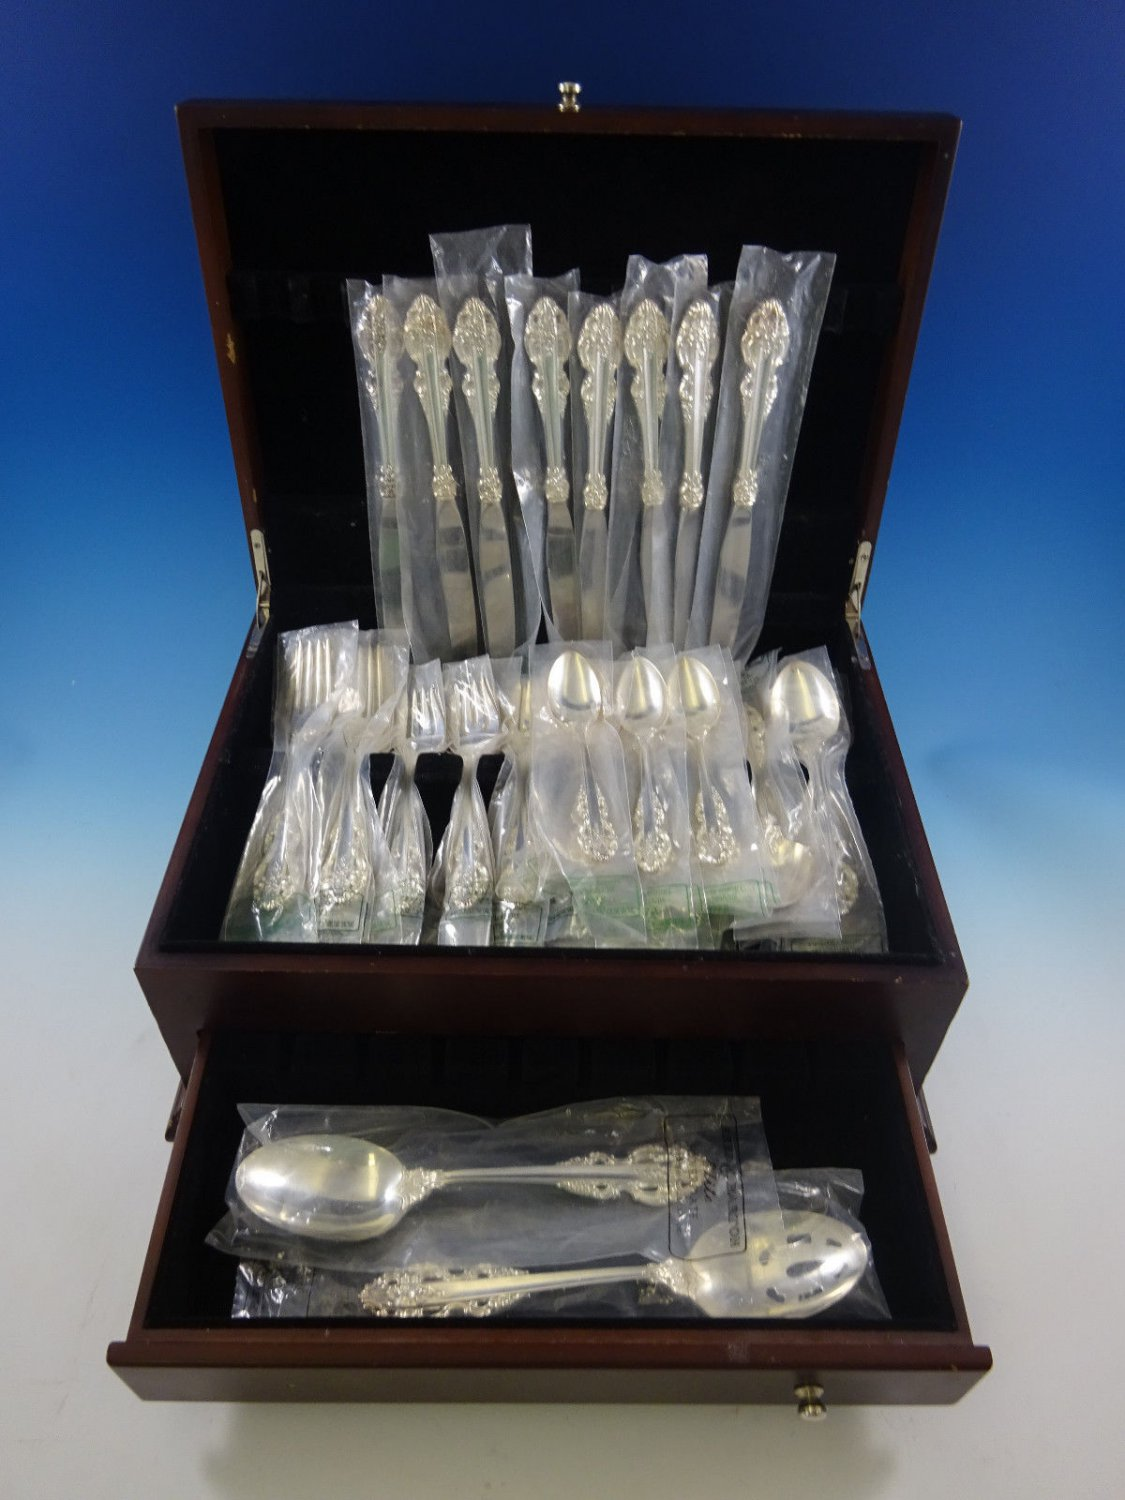 Chambord by Reed and Barton Silverplate Flatware Set For 8 Service 50 Pieces New